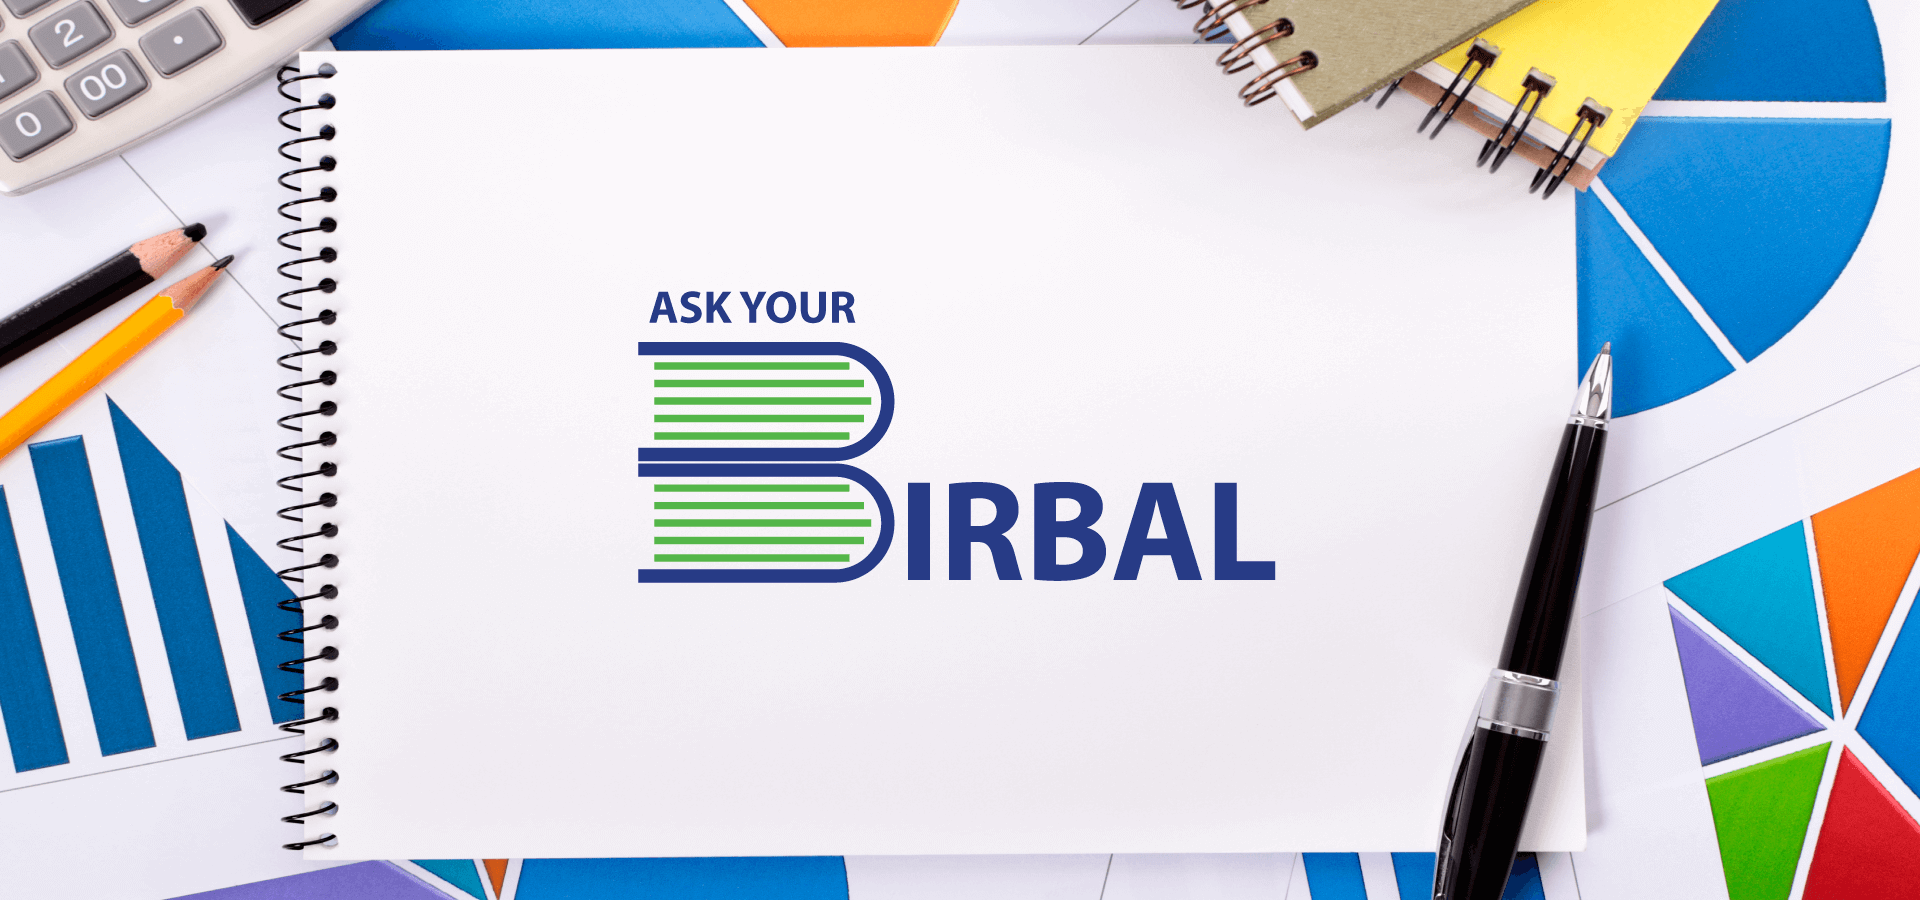 Ask Your Birbal